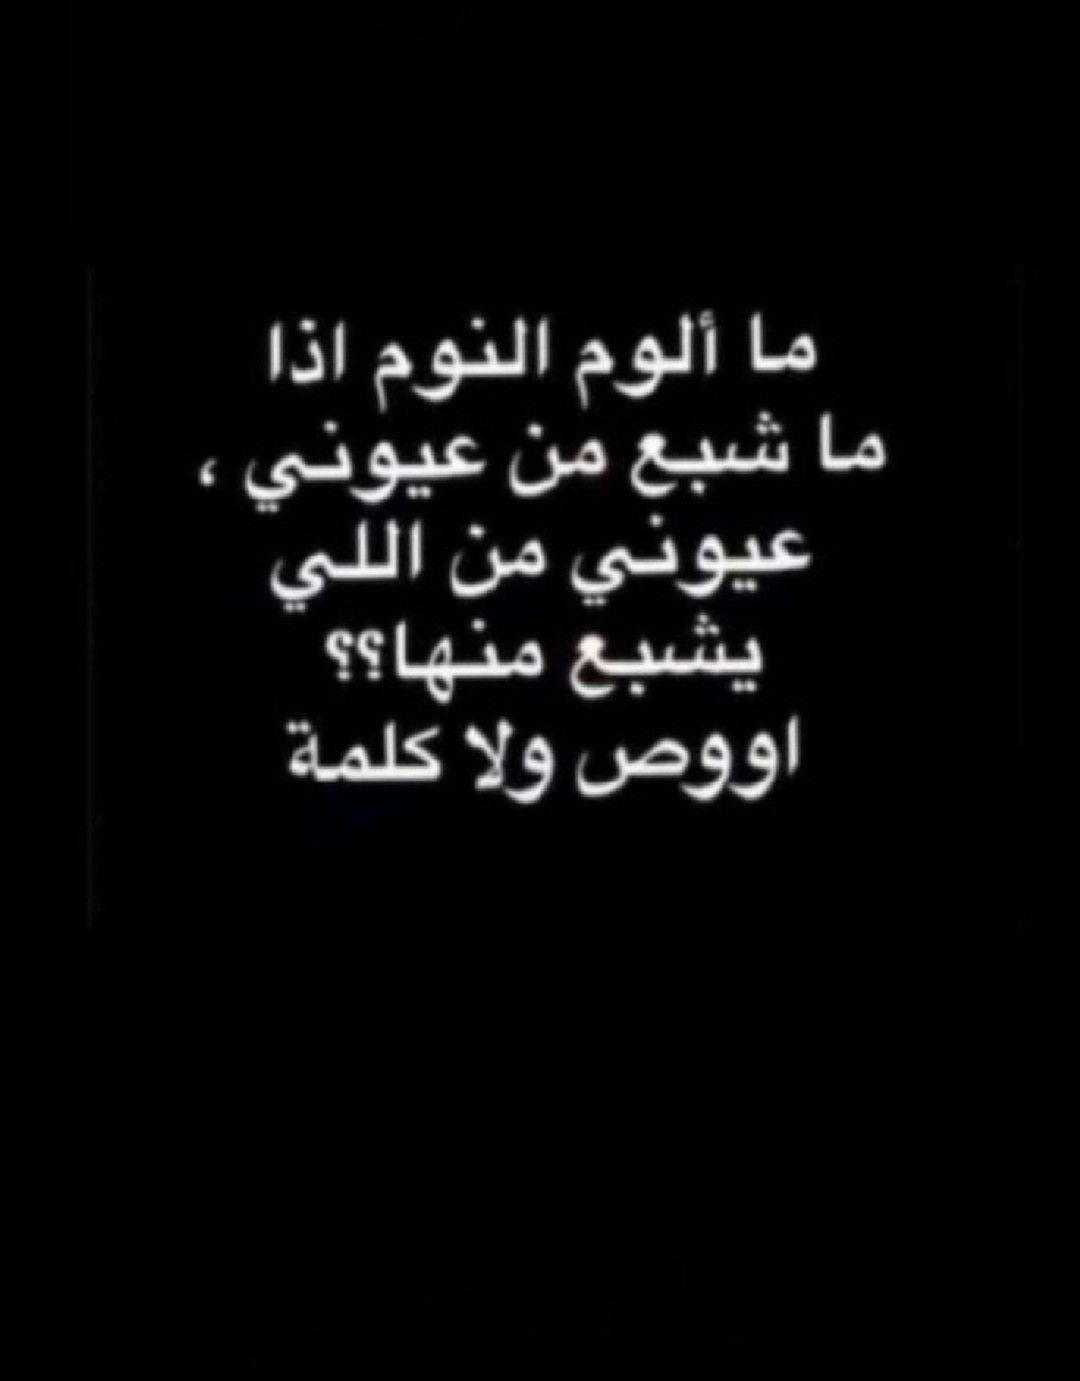 Pin By Just Shahad On Sh In 2021 Funny Arabic Quotes Funny Quotes Fun Quotes Funny